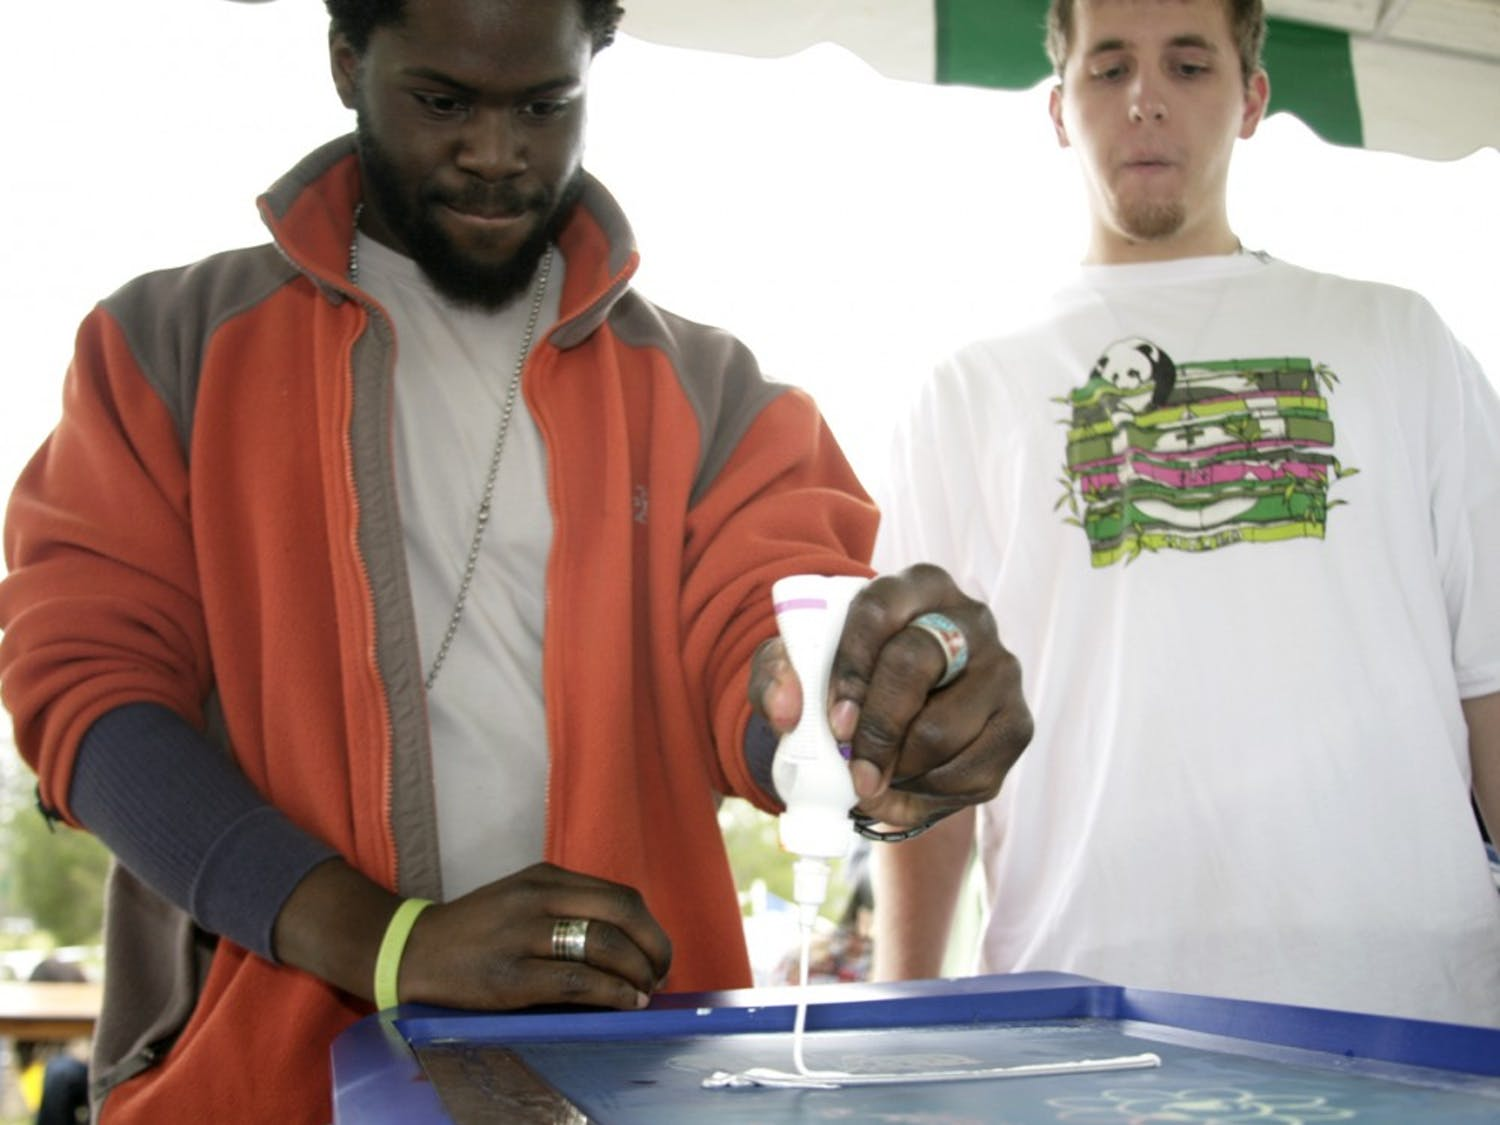 CJ Suitt, of Chapel Hill, screen presses a shirt found at the Swap-O-Rama-Rama, an event that encouraged the trade and creative re-use of clothing at Earth Action Day on Saturday at the Southern Community Park. Suitt and Jake Jacoby (right) are cofounders of Sacrificial Poets, a group that performs spoken-word poetry and works with high school students in Chapel Hill, and performed at the event.